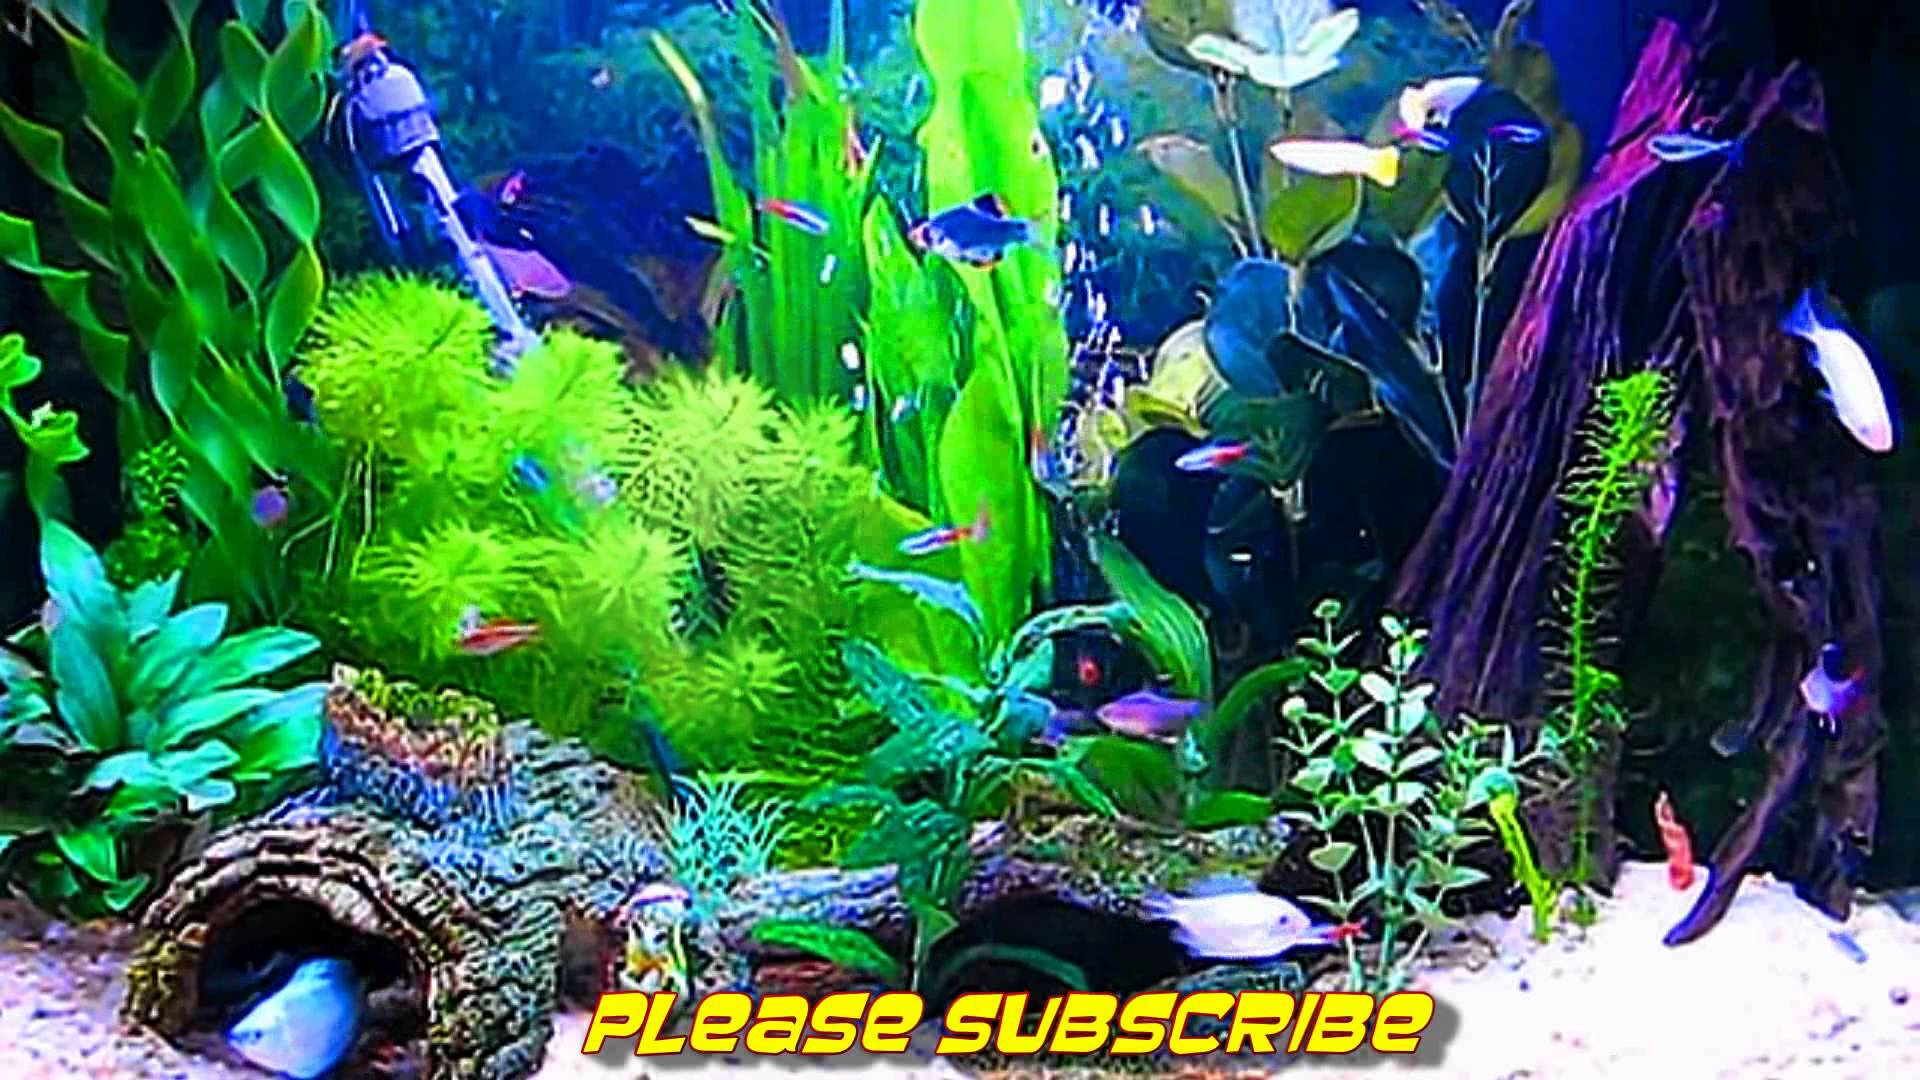 Fish aquarium live wallpaper - Amazing Hd Aquarium Screensaver Free Windows And Android Youtube